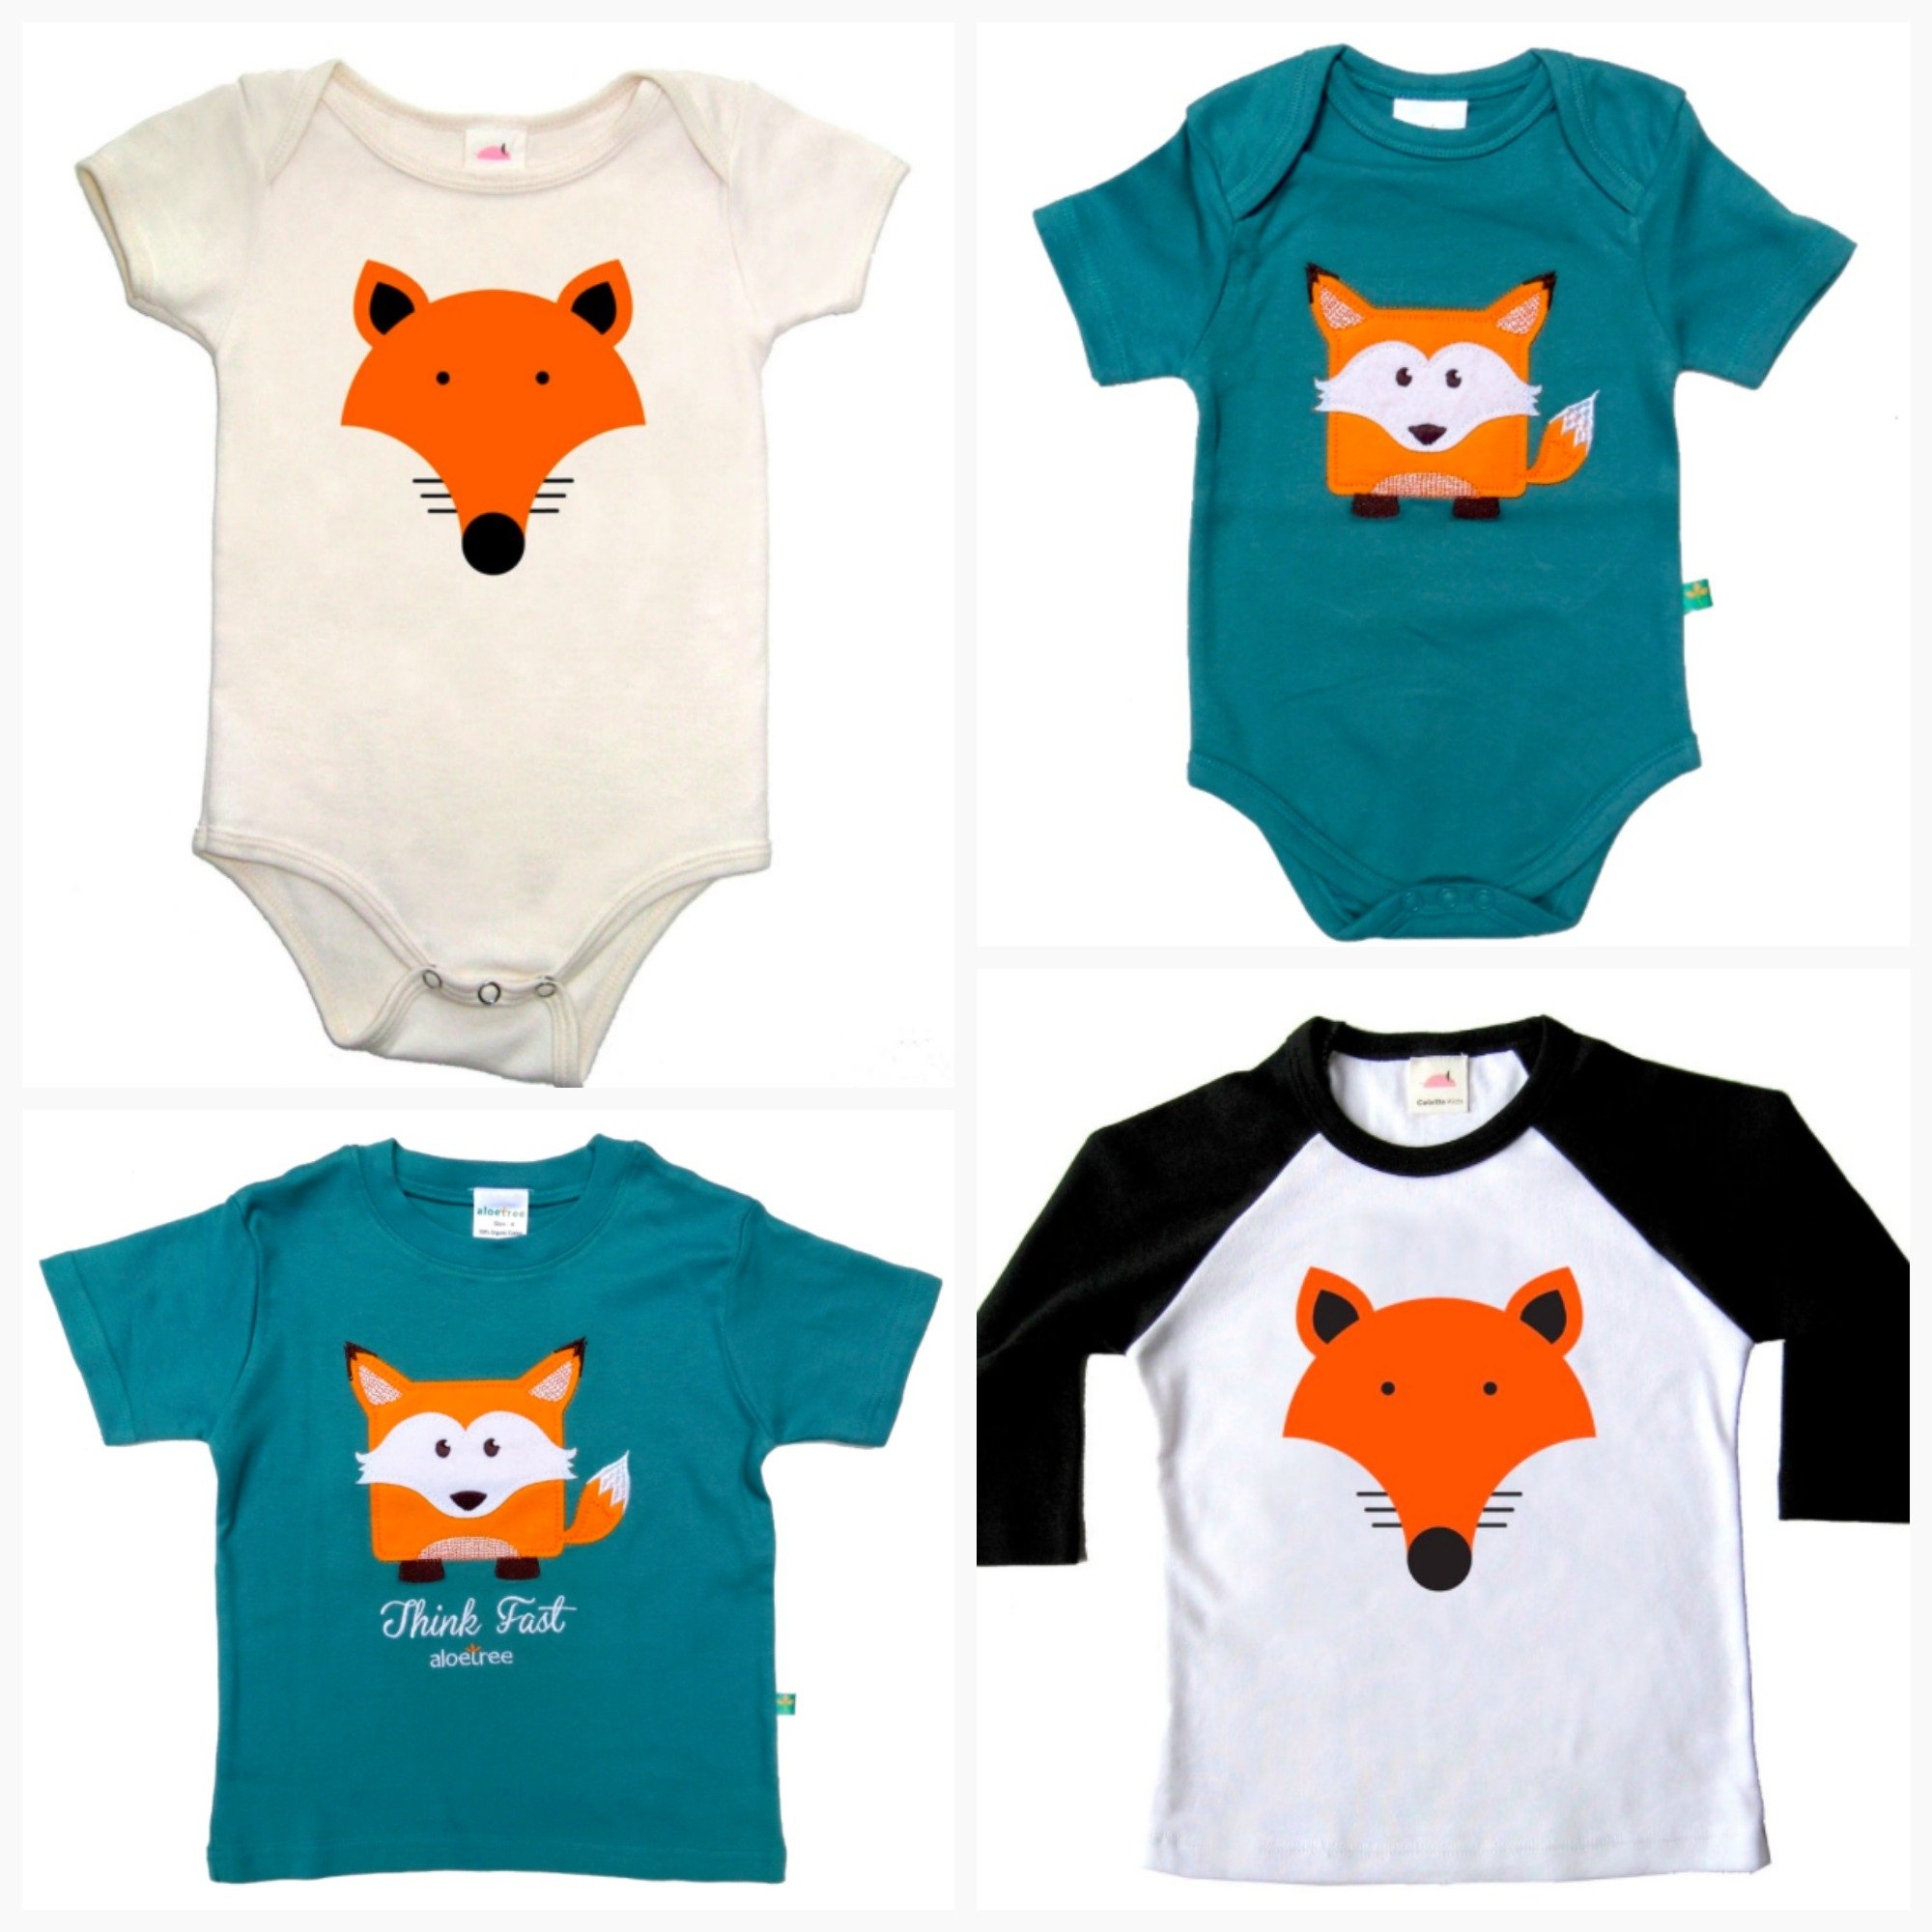 Adorable Fox Onesies & Toddler T-Shirts